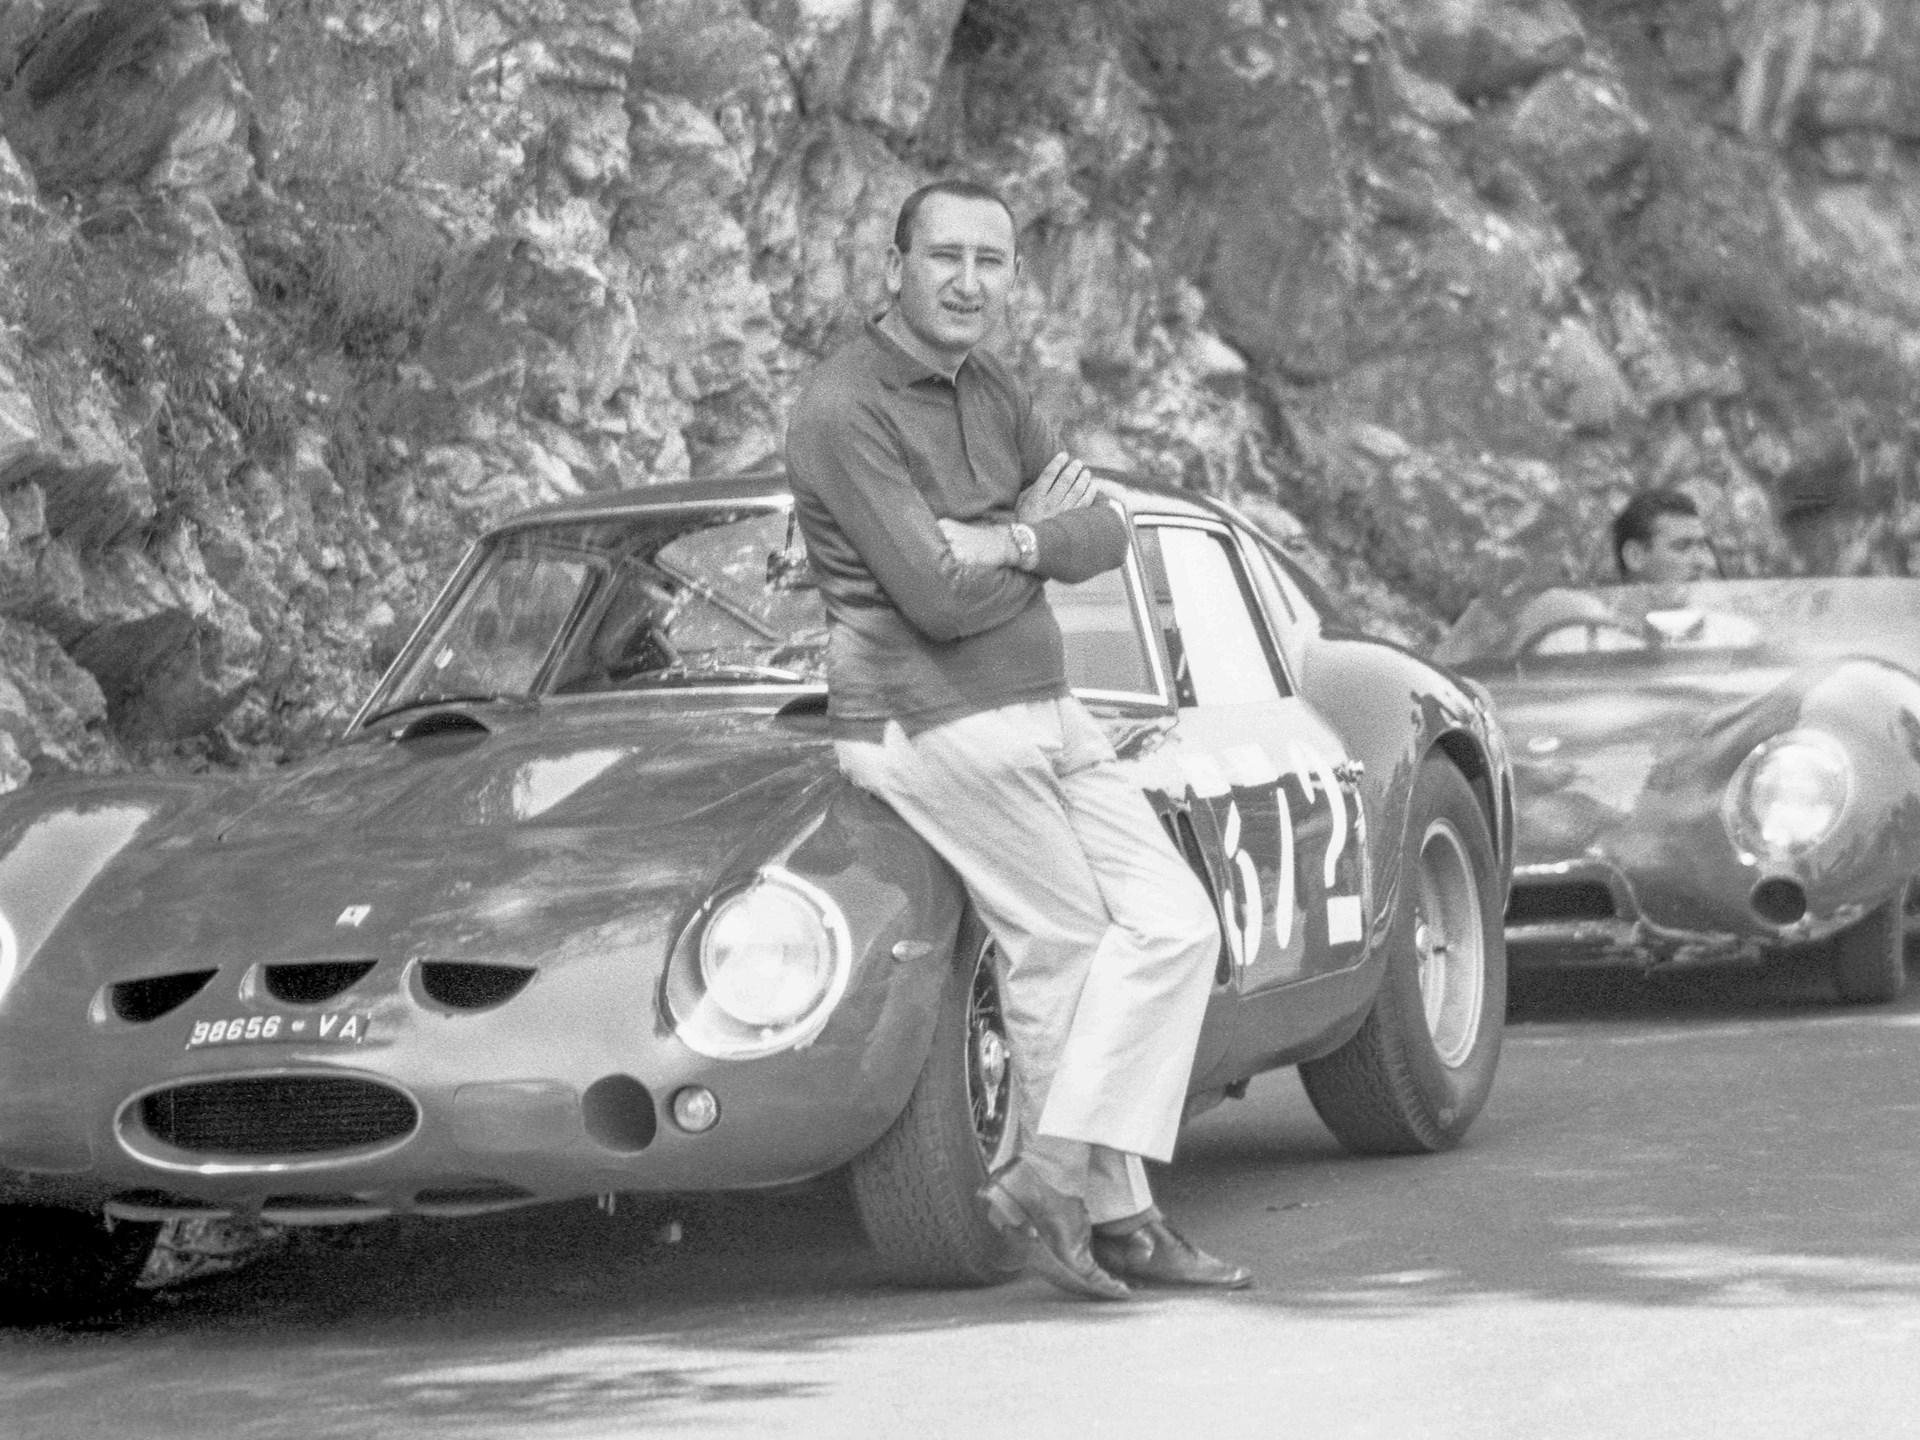 Edoardo Lualdi-Garbardi with his 250 GTO at the Trento-Bondone Hillclimb in 1962.